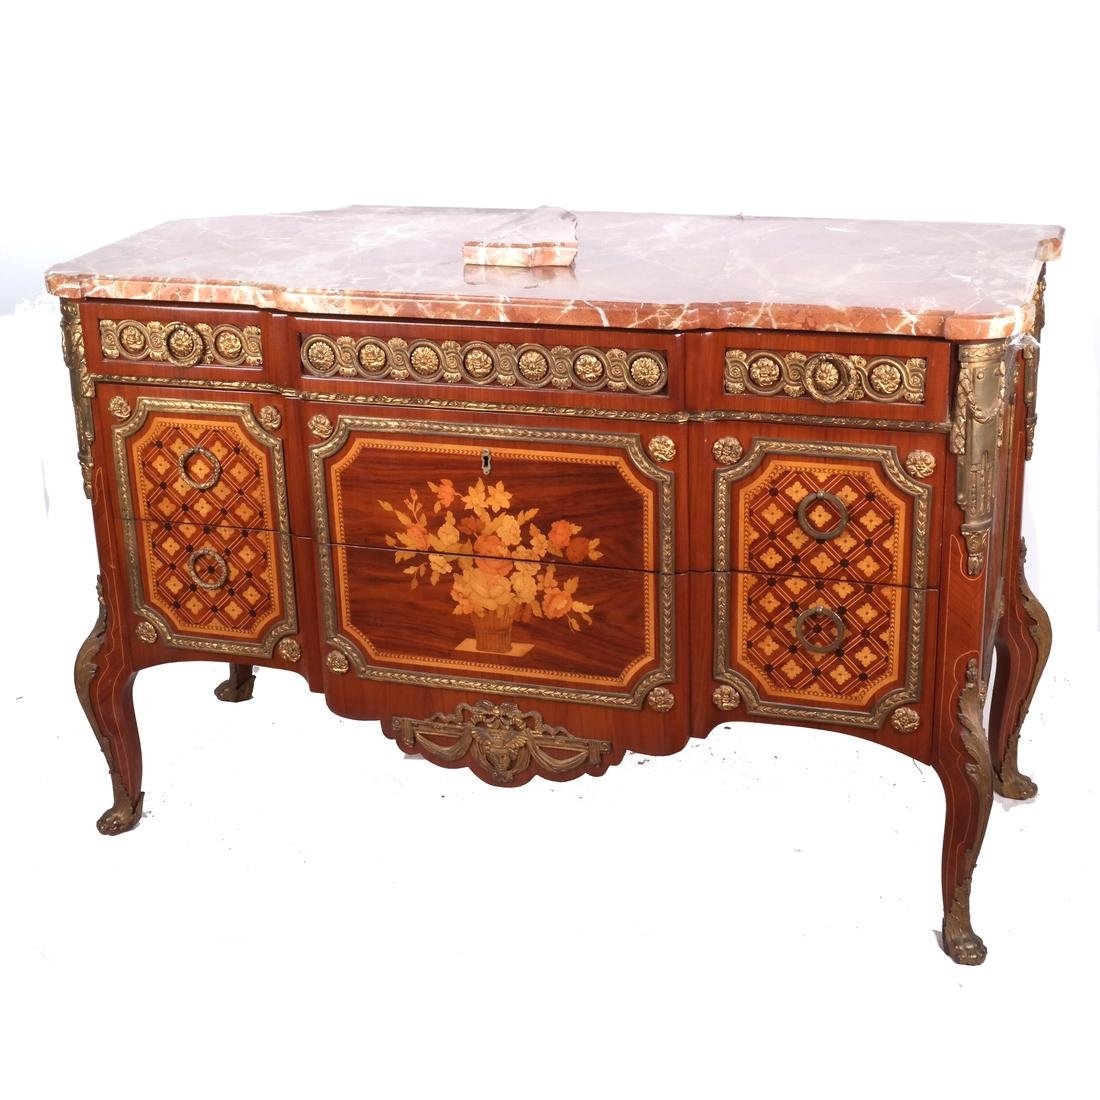 French-Style Marble-Top Commode